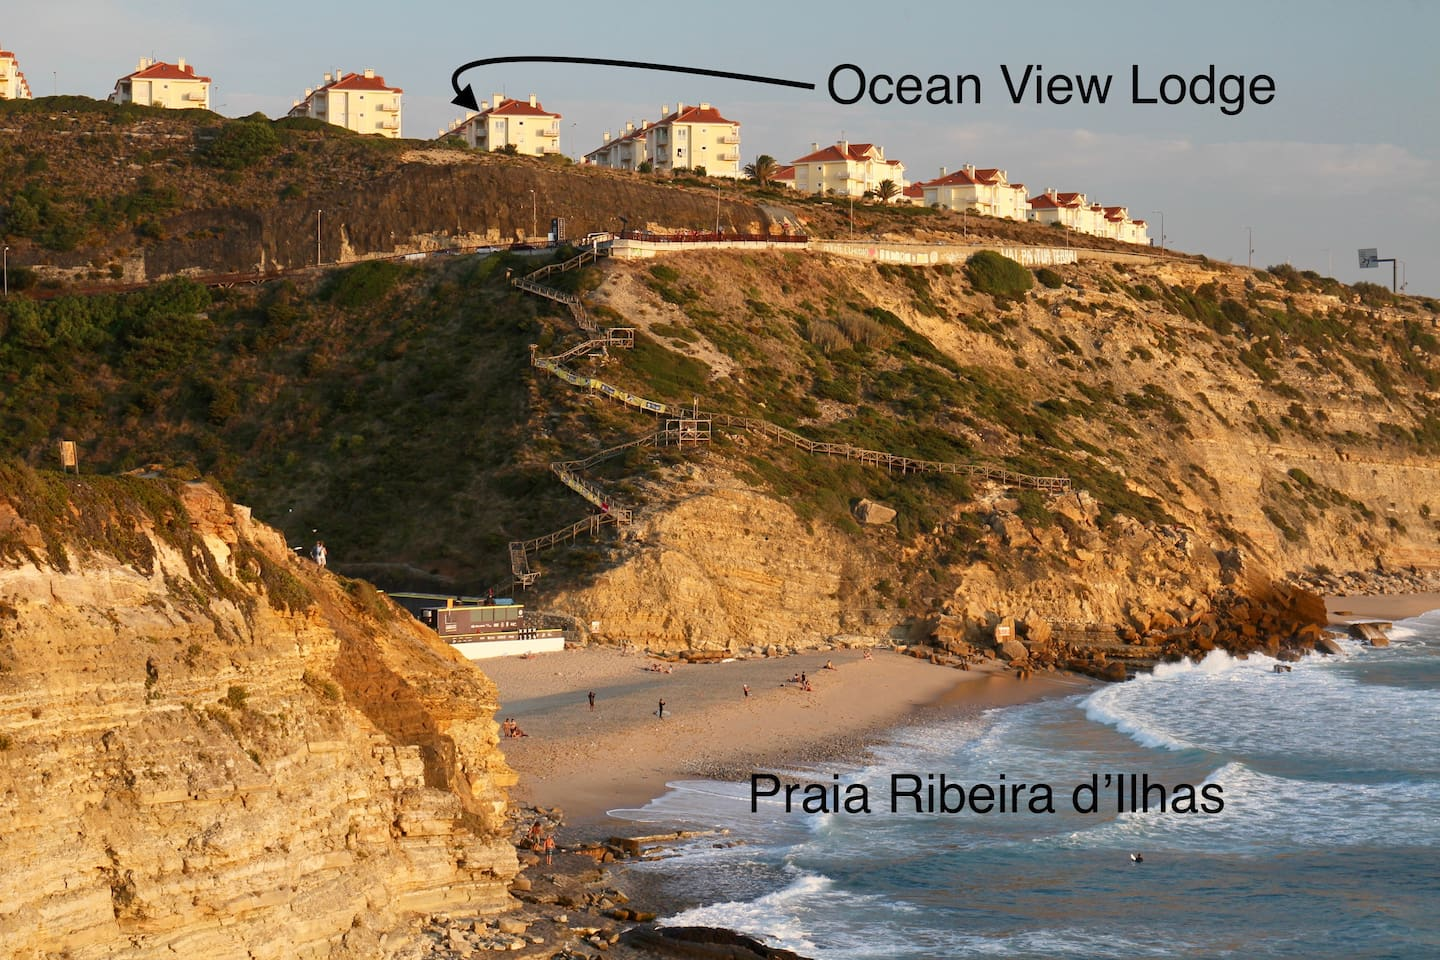 Stunning position overlooking Praia Ribeira d'Ilhas. Showing the charming wooden steps for the walk to the beach.